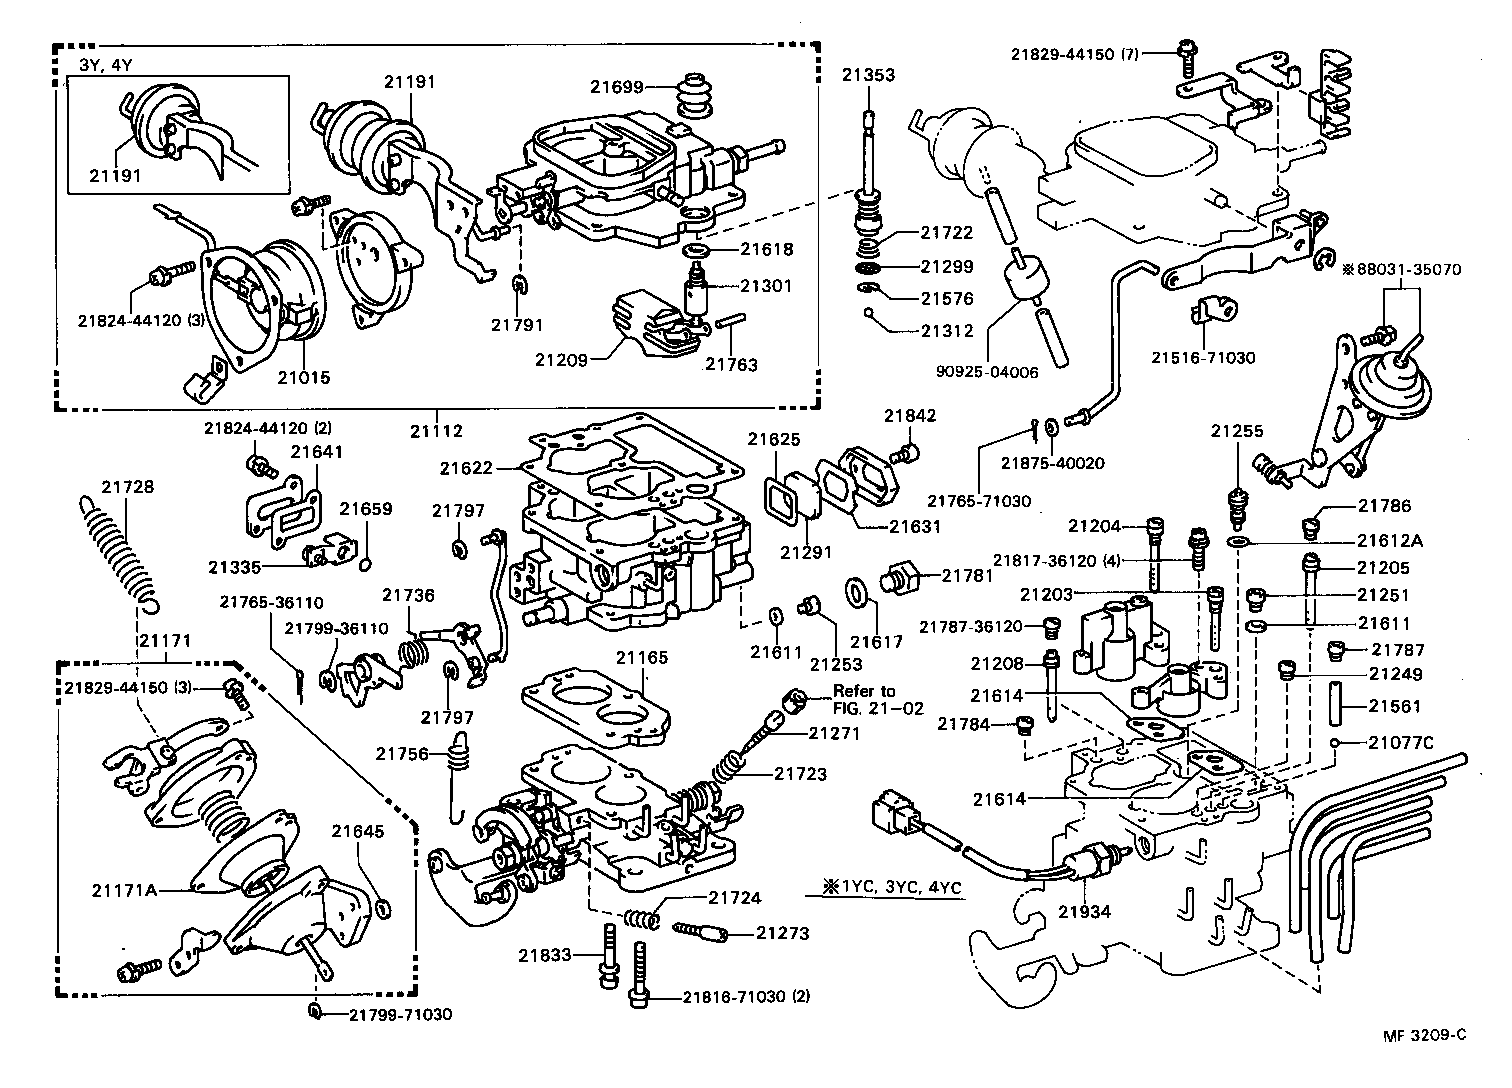 Marlin Parts Diagram 97 Wiring Diagrams For Dummies 60 As Well Model 336 On Toyota 22r Engine Electrical Schematic 80